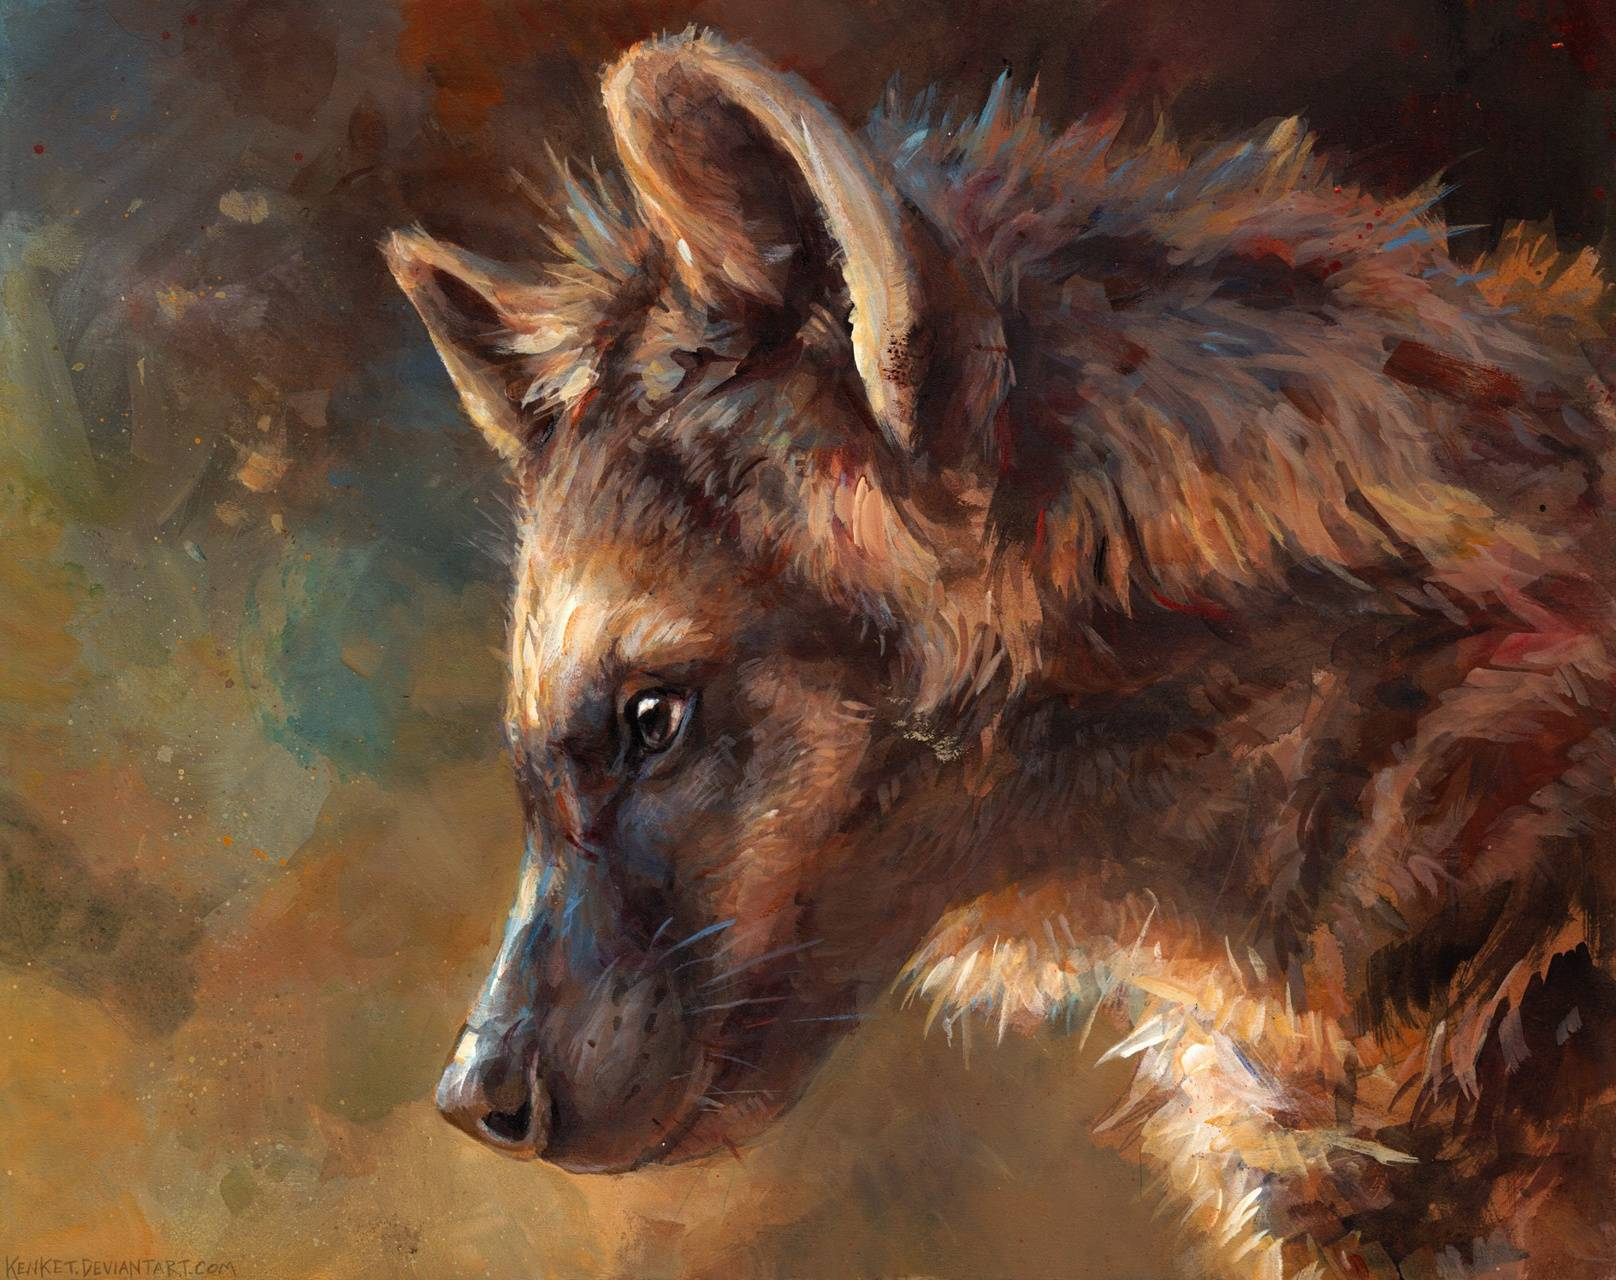 Hyena Art Wallpaper